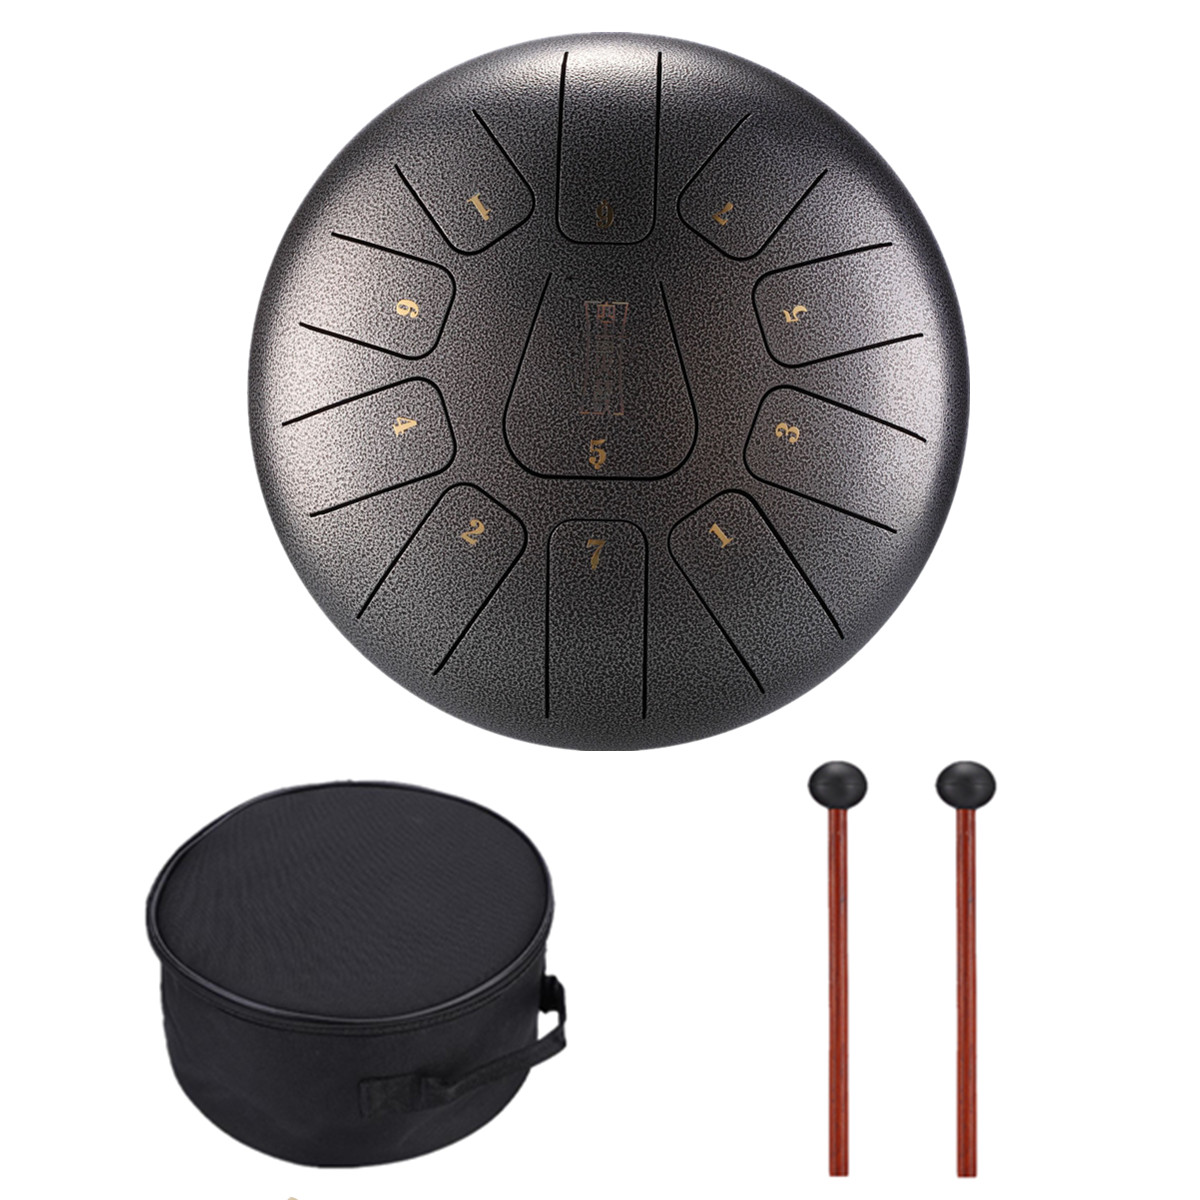 Grtsunsea 12 Inch Steel Tongue Drum Handpan C Major 11 Notes Percussion Instrument Hand Pan Tank Drum with Mallets & Bag